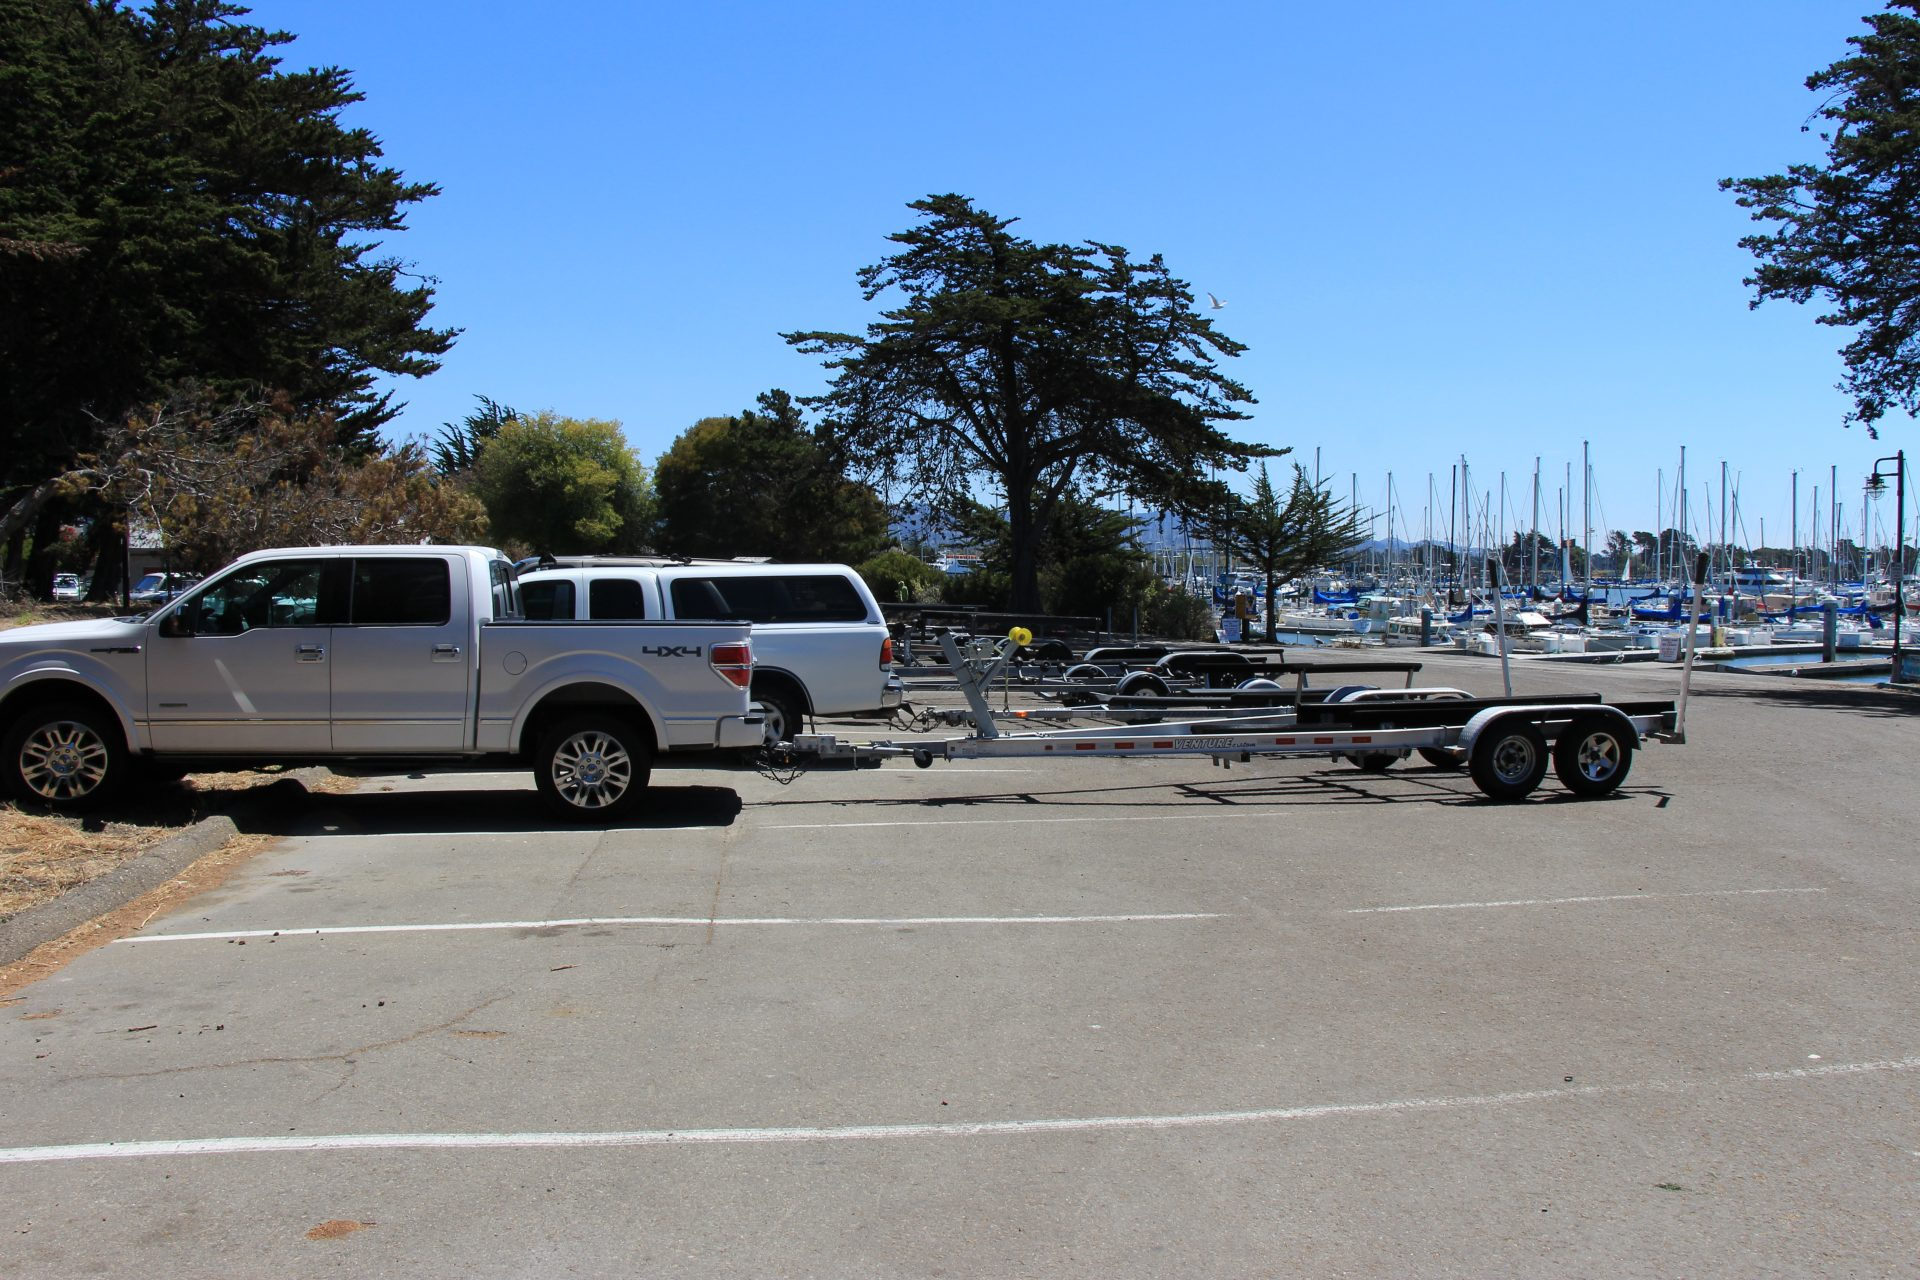 parking lot with long spots, two occupied with trucks and empty boat trailers